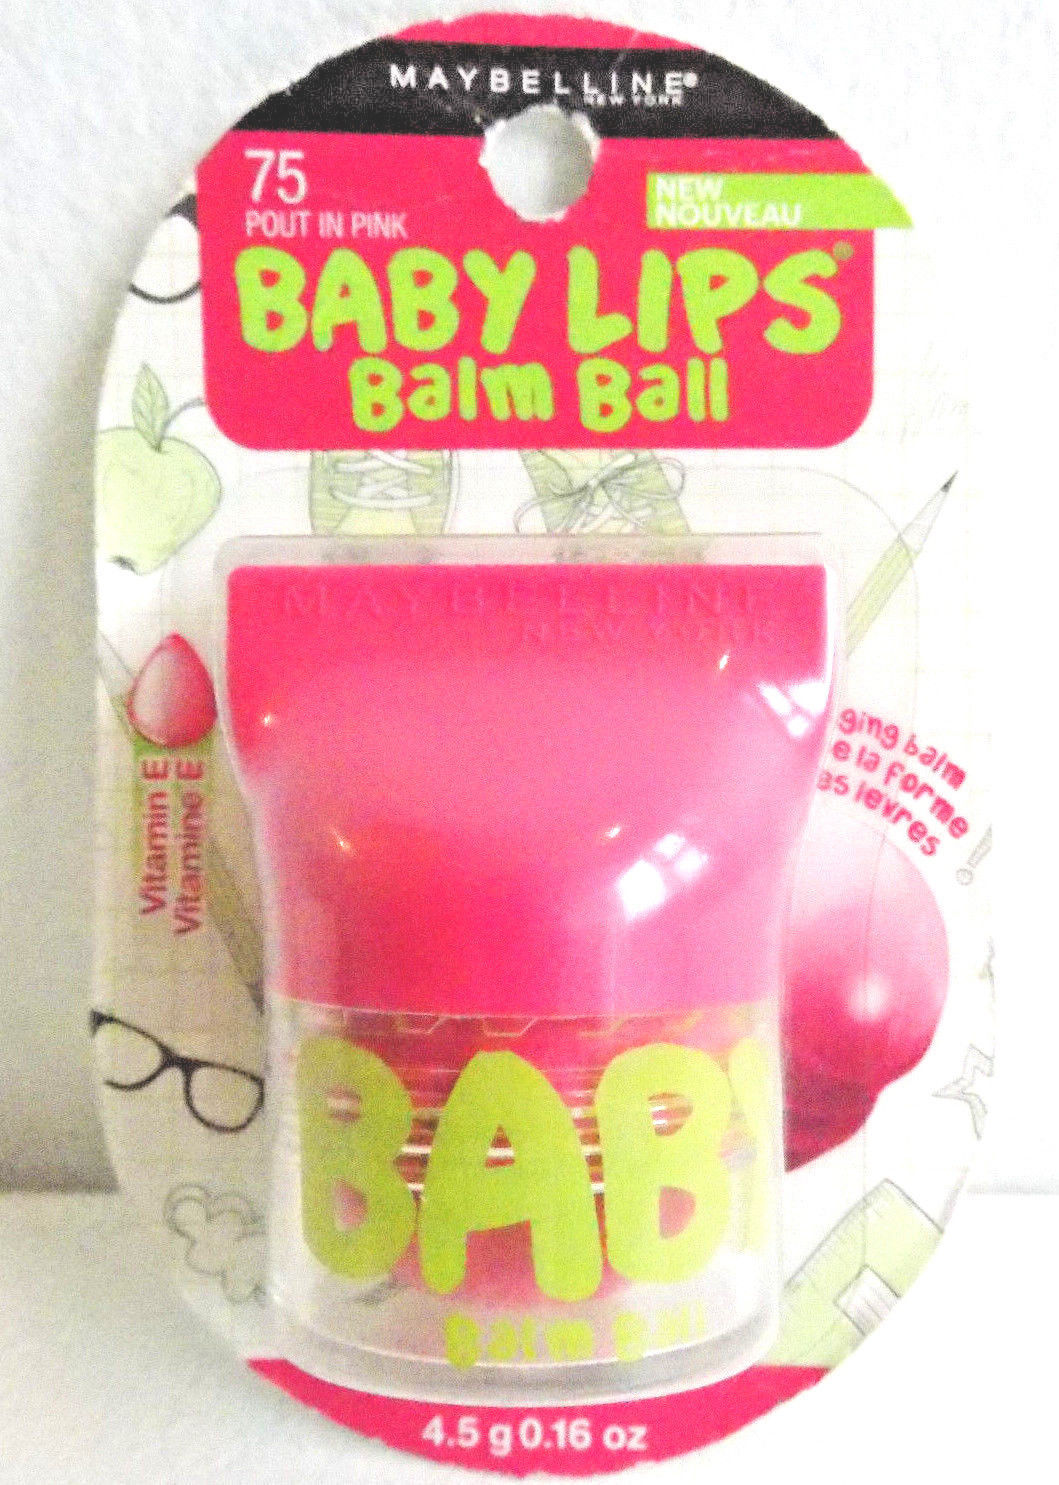 Maybelline Baby Lips Balm Ball Pout in Pink #75